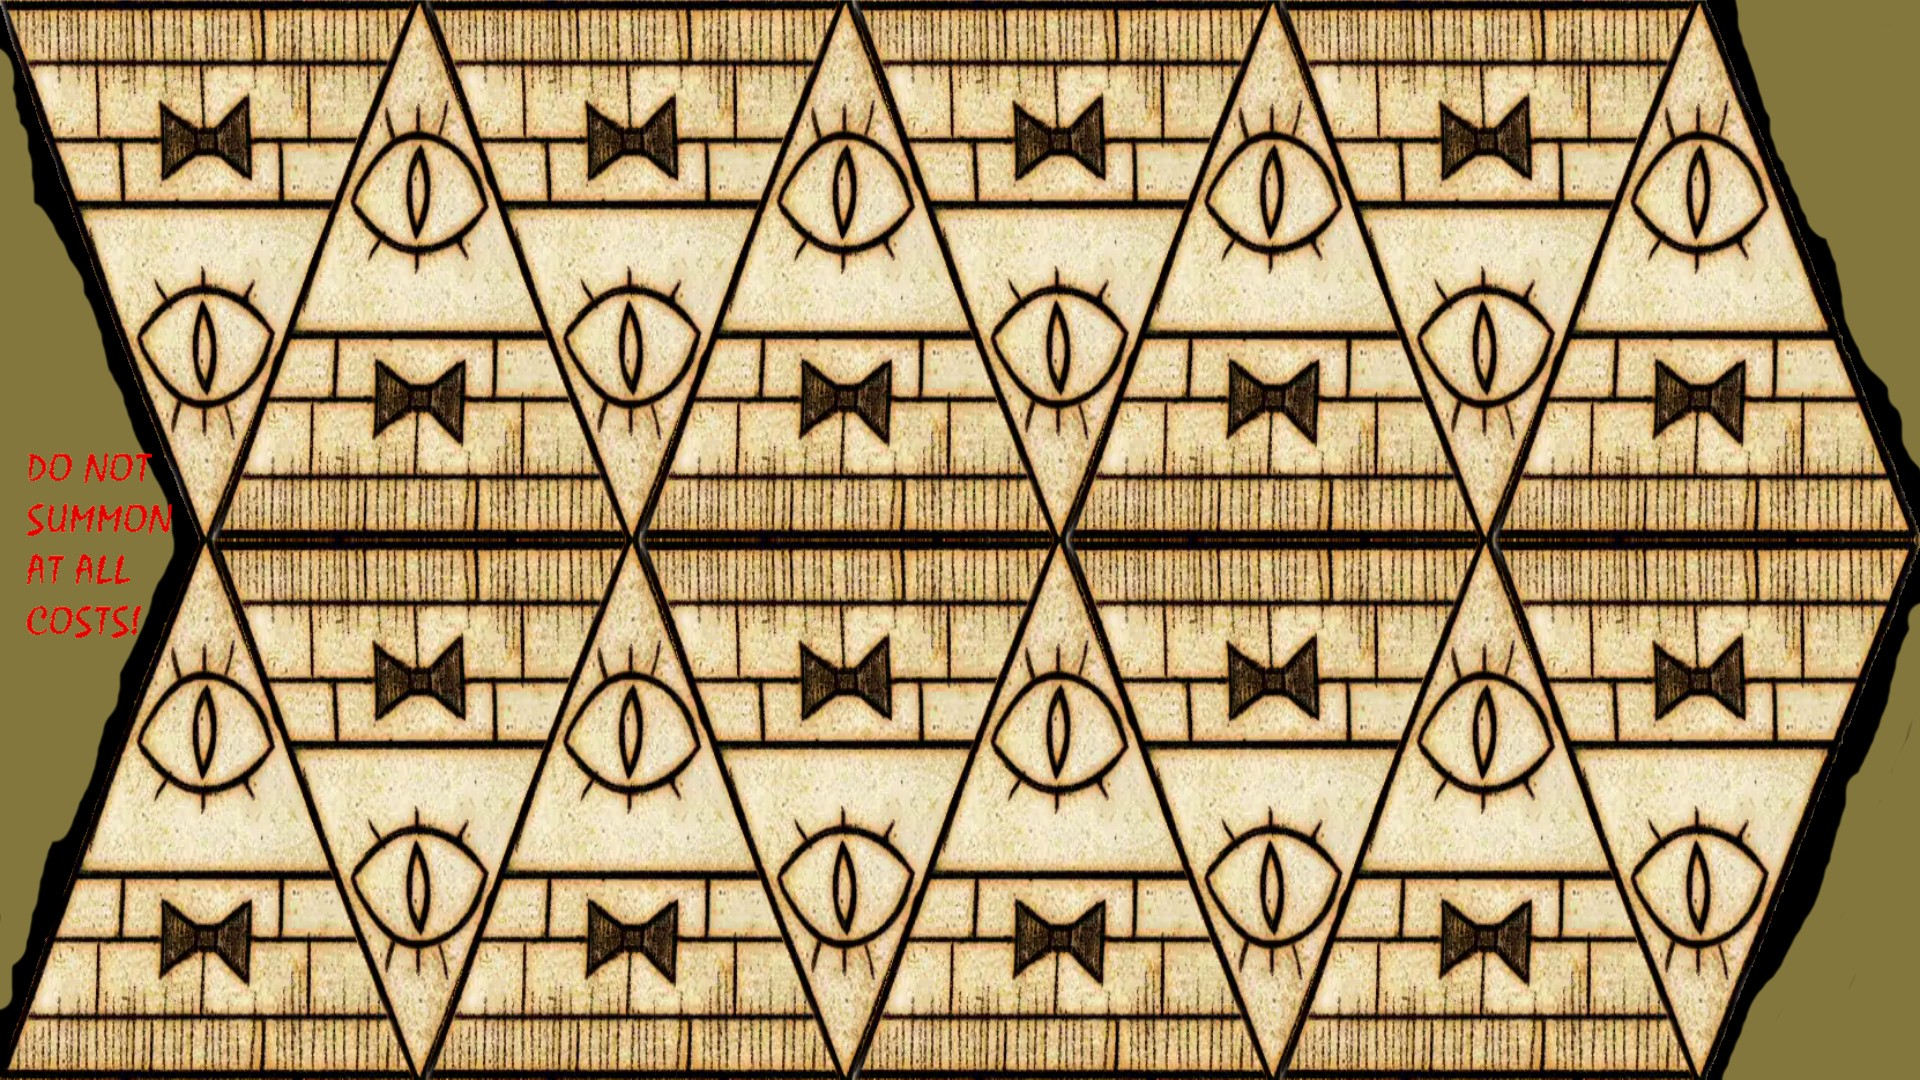 Gravity Falls Wallpaper For Computer Bill Cipher Wallpaper 183 ① Download Free Awesome Full Hd